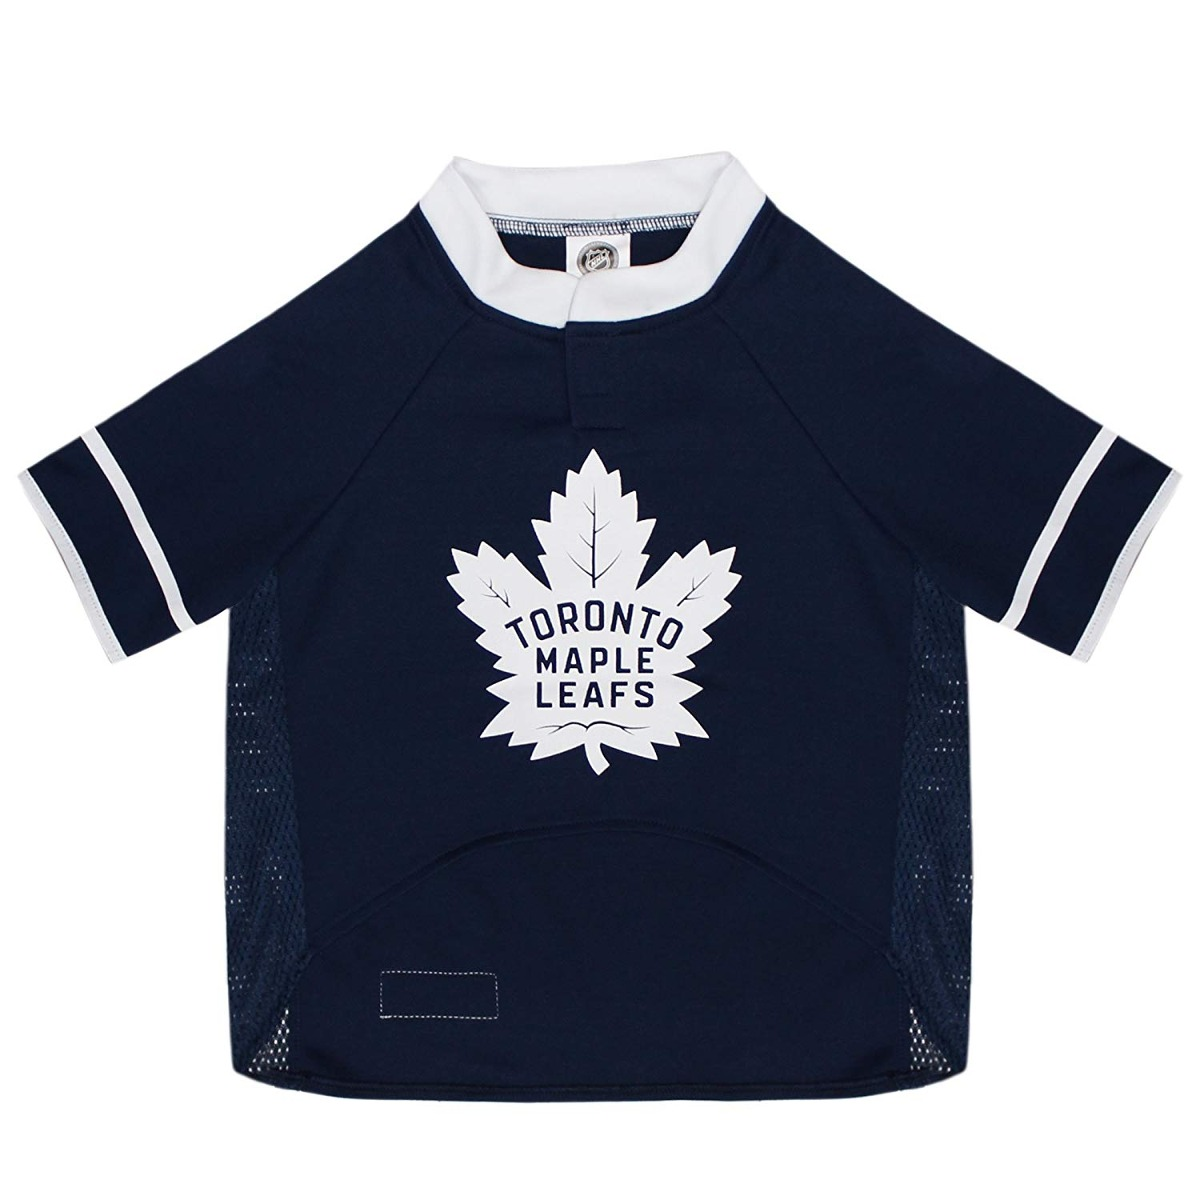 new product e10b0 ccfc0 Nhl Toronto Maple Leafs Jersey For Dogs & Cats, Small. - Let